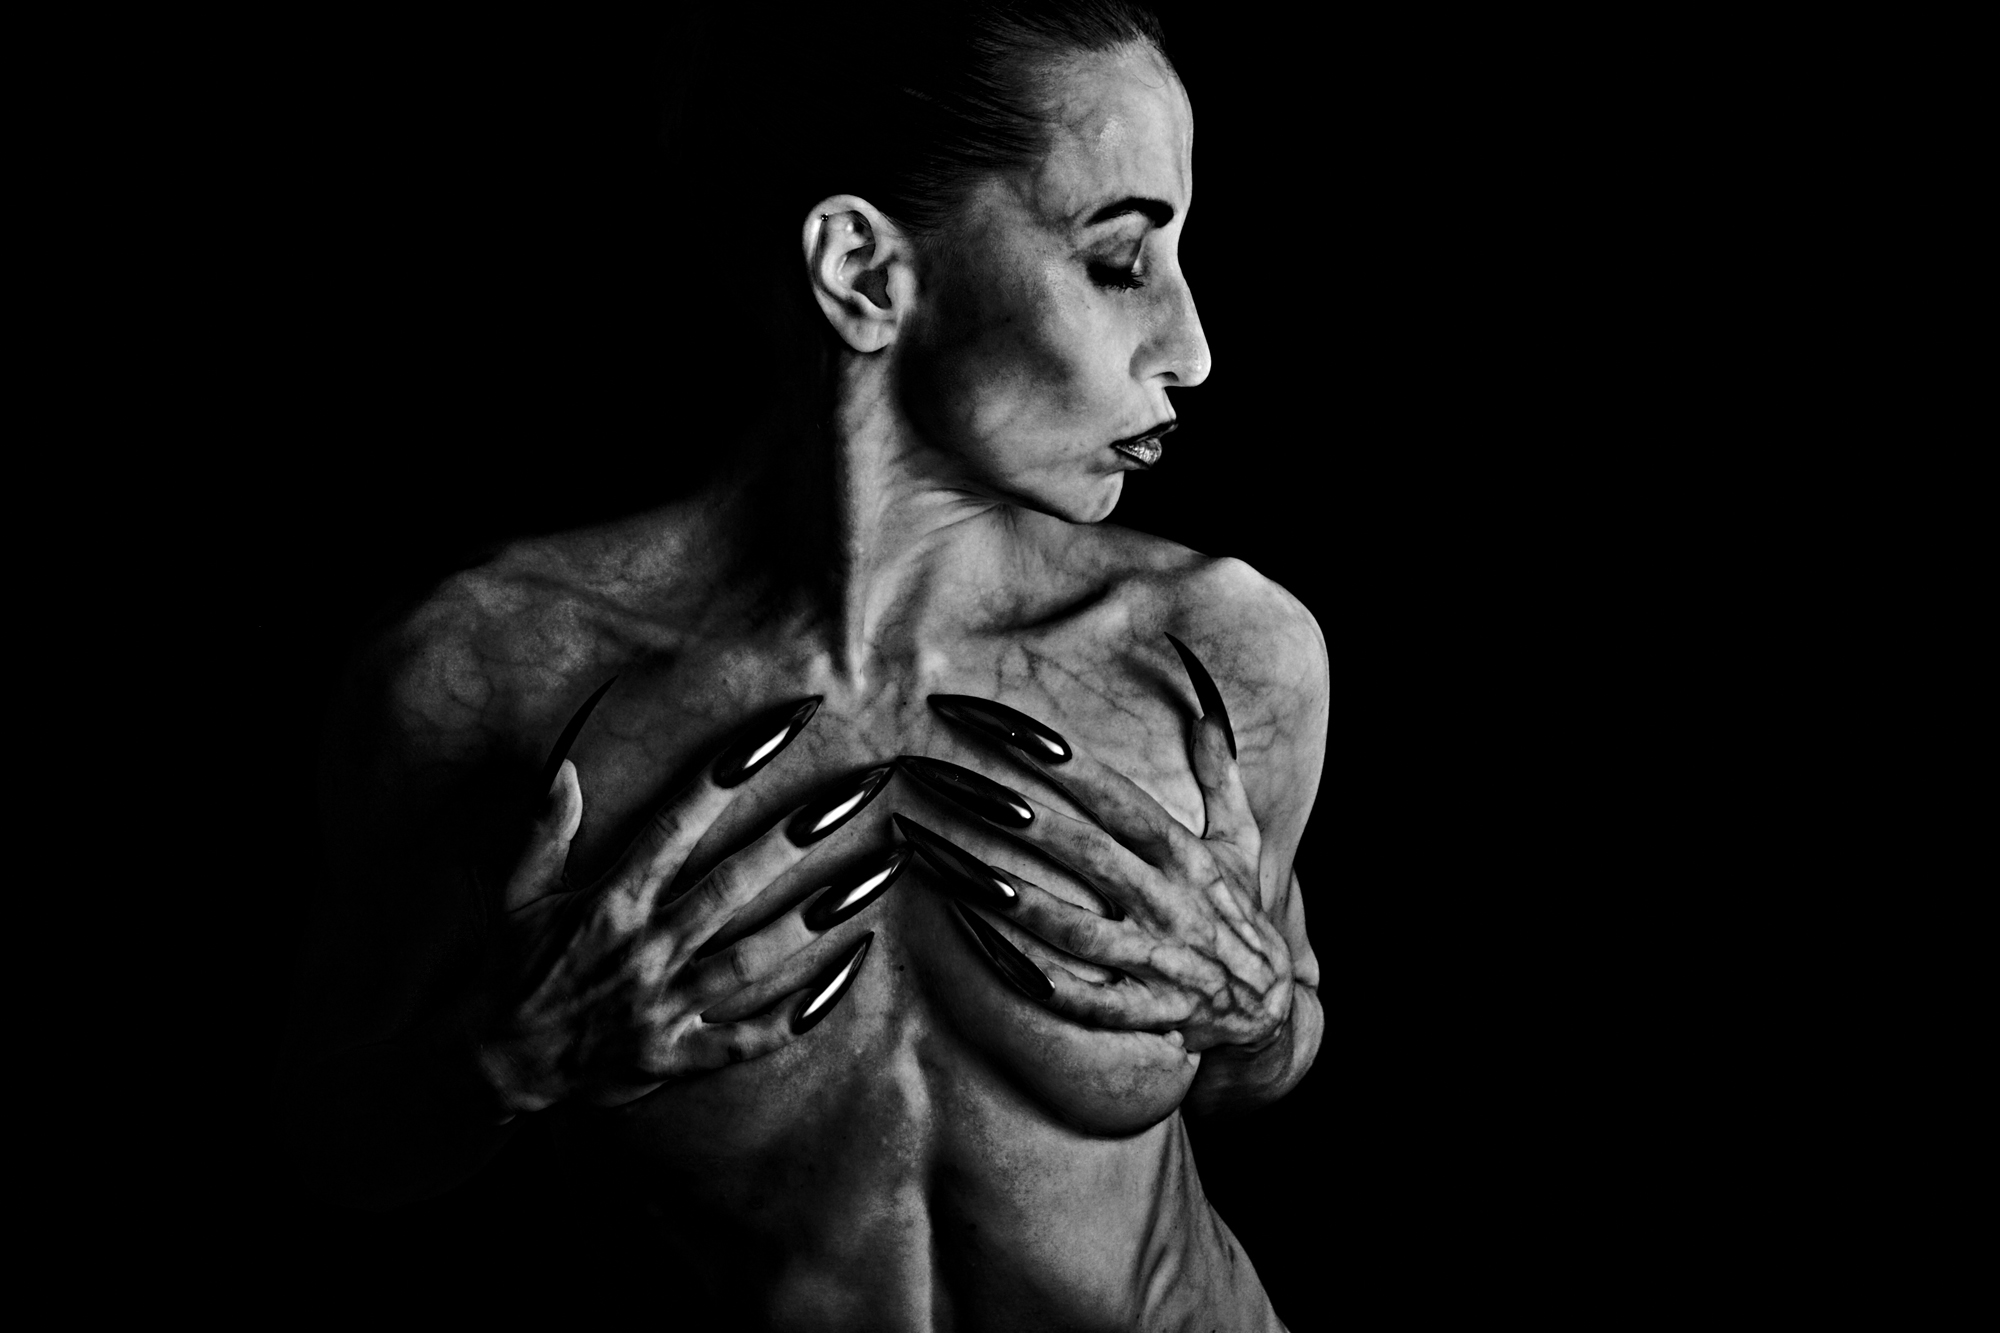 Vesa Ekholm vke Fine Art Photography Atia Dark Beauty